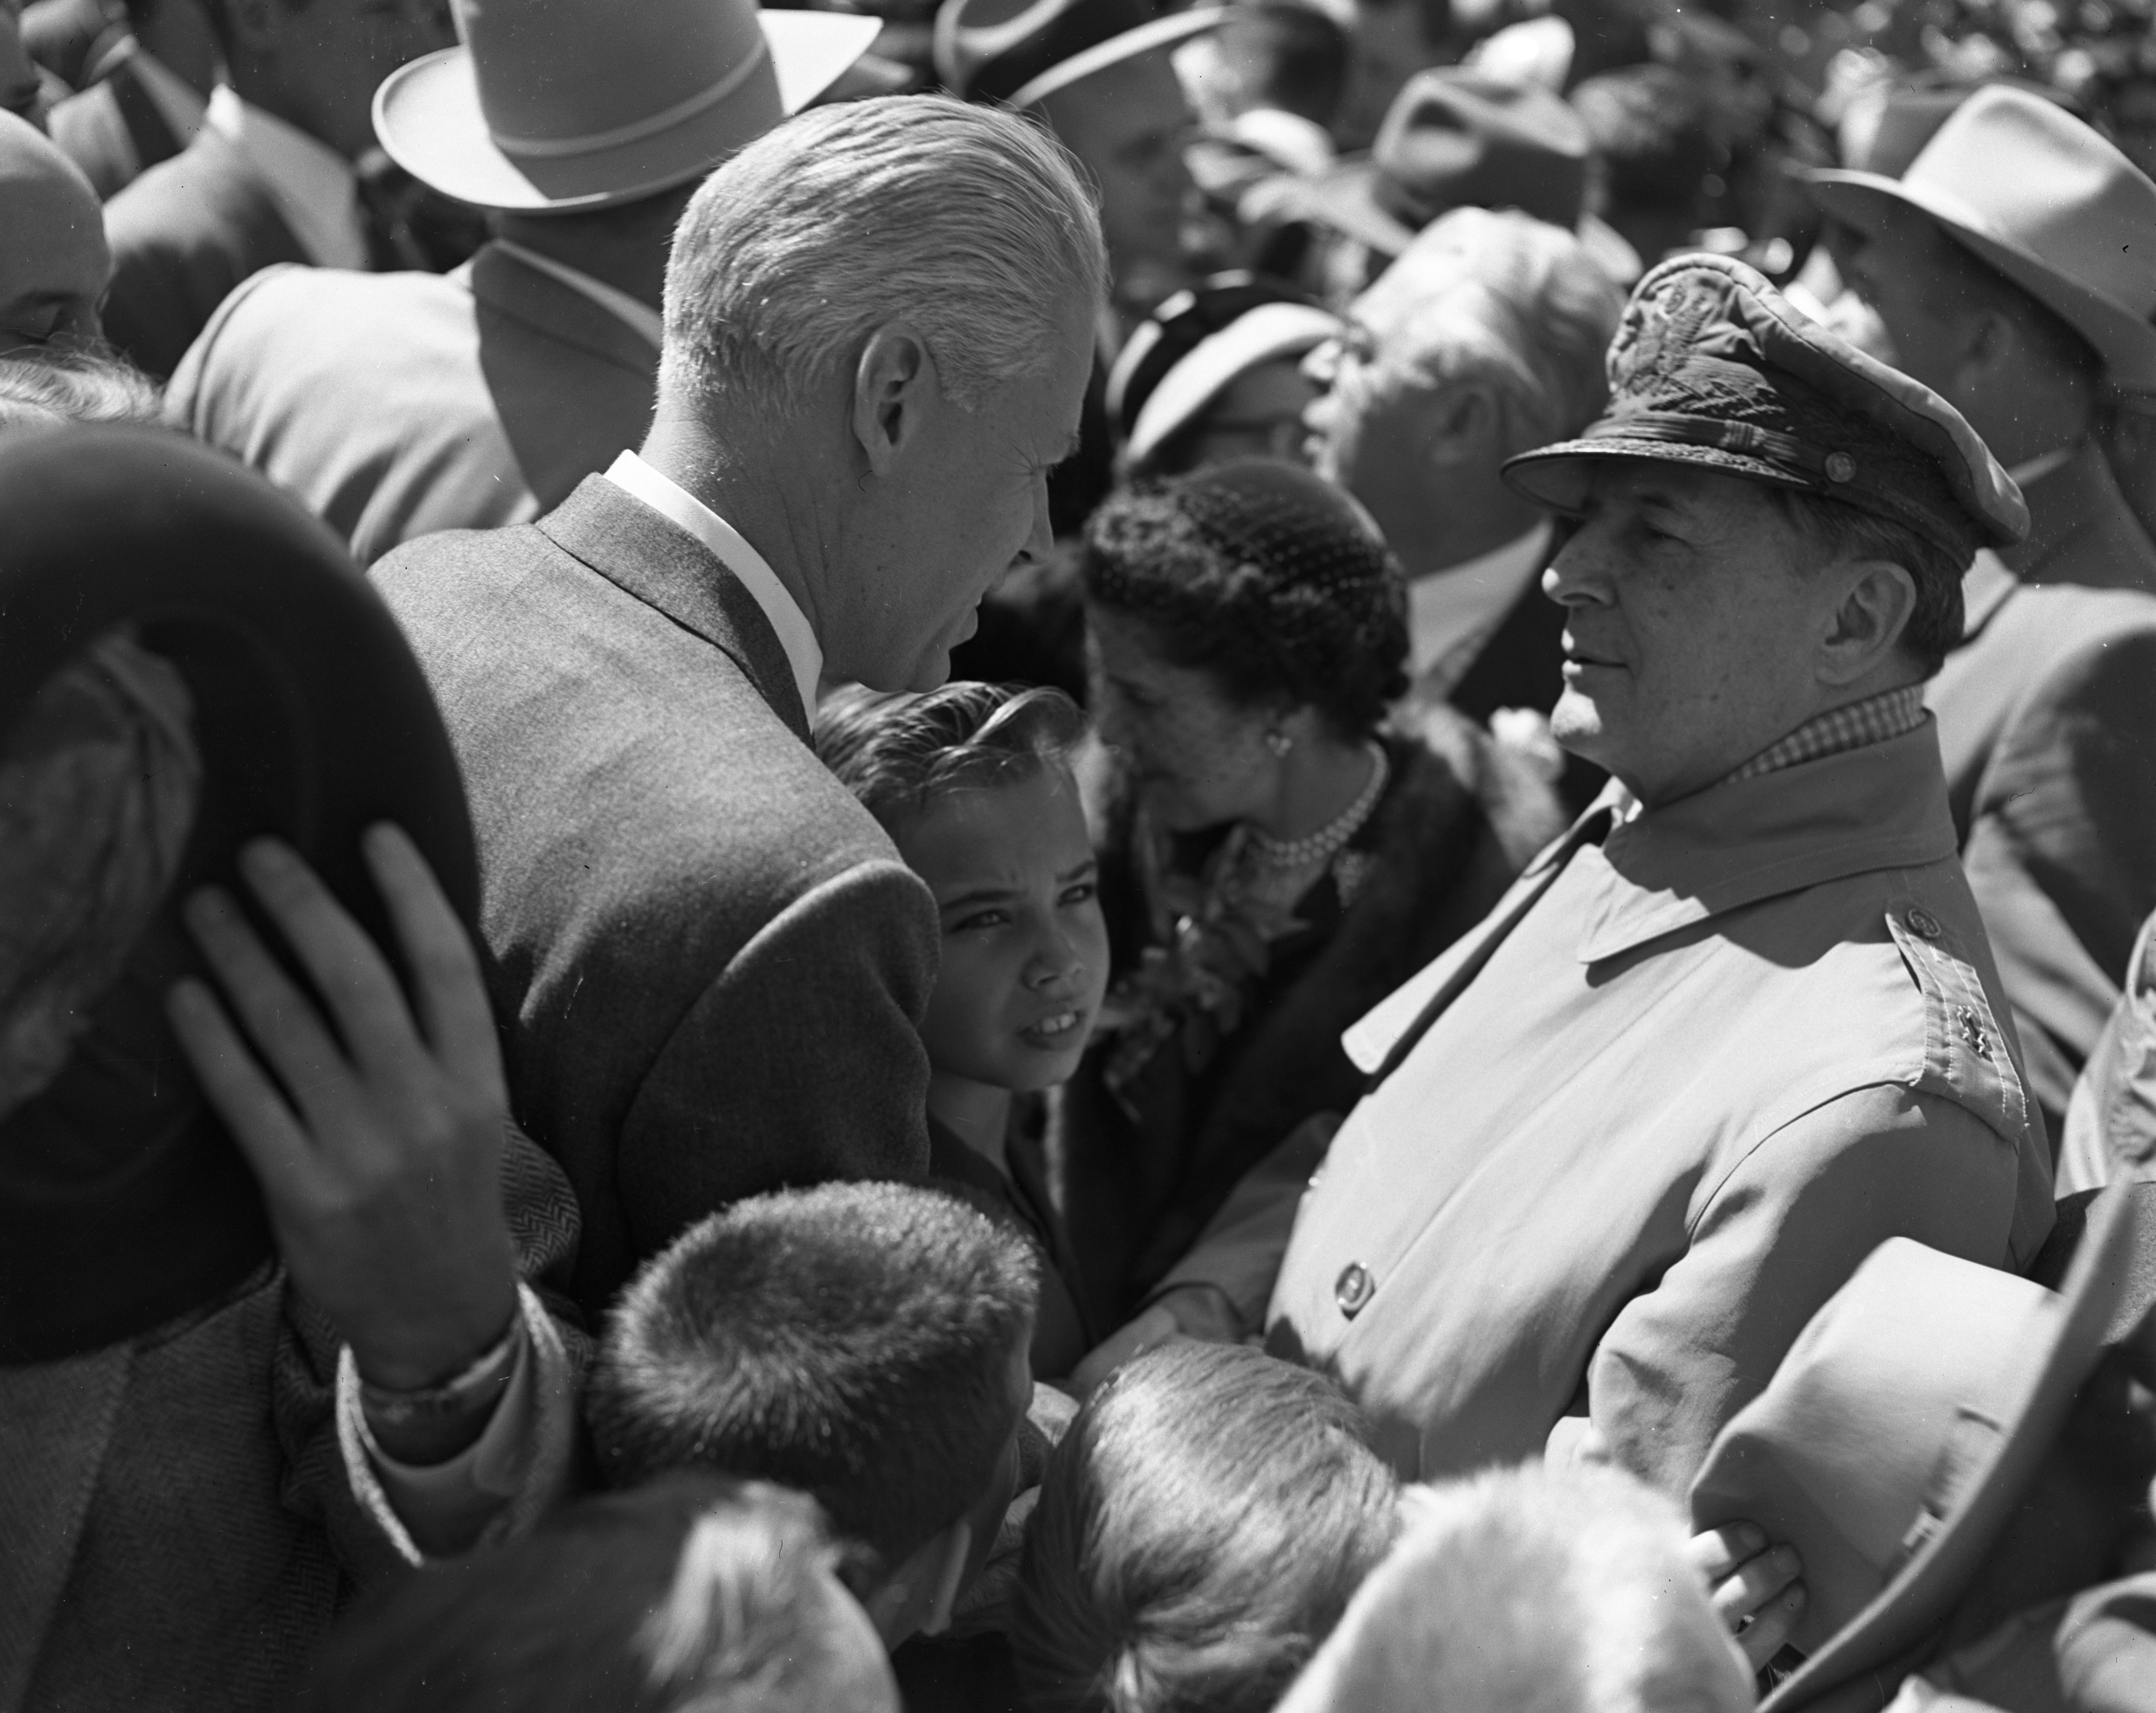 Harlan H. Hatcher and General Douglas MacArthur during the latter's visit to Ann Arbor, May 16, 1952 image